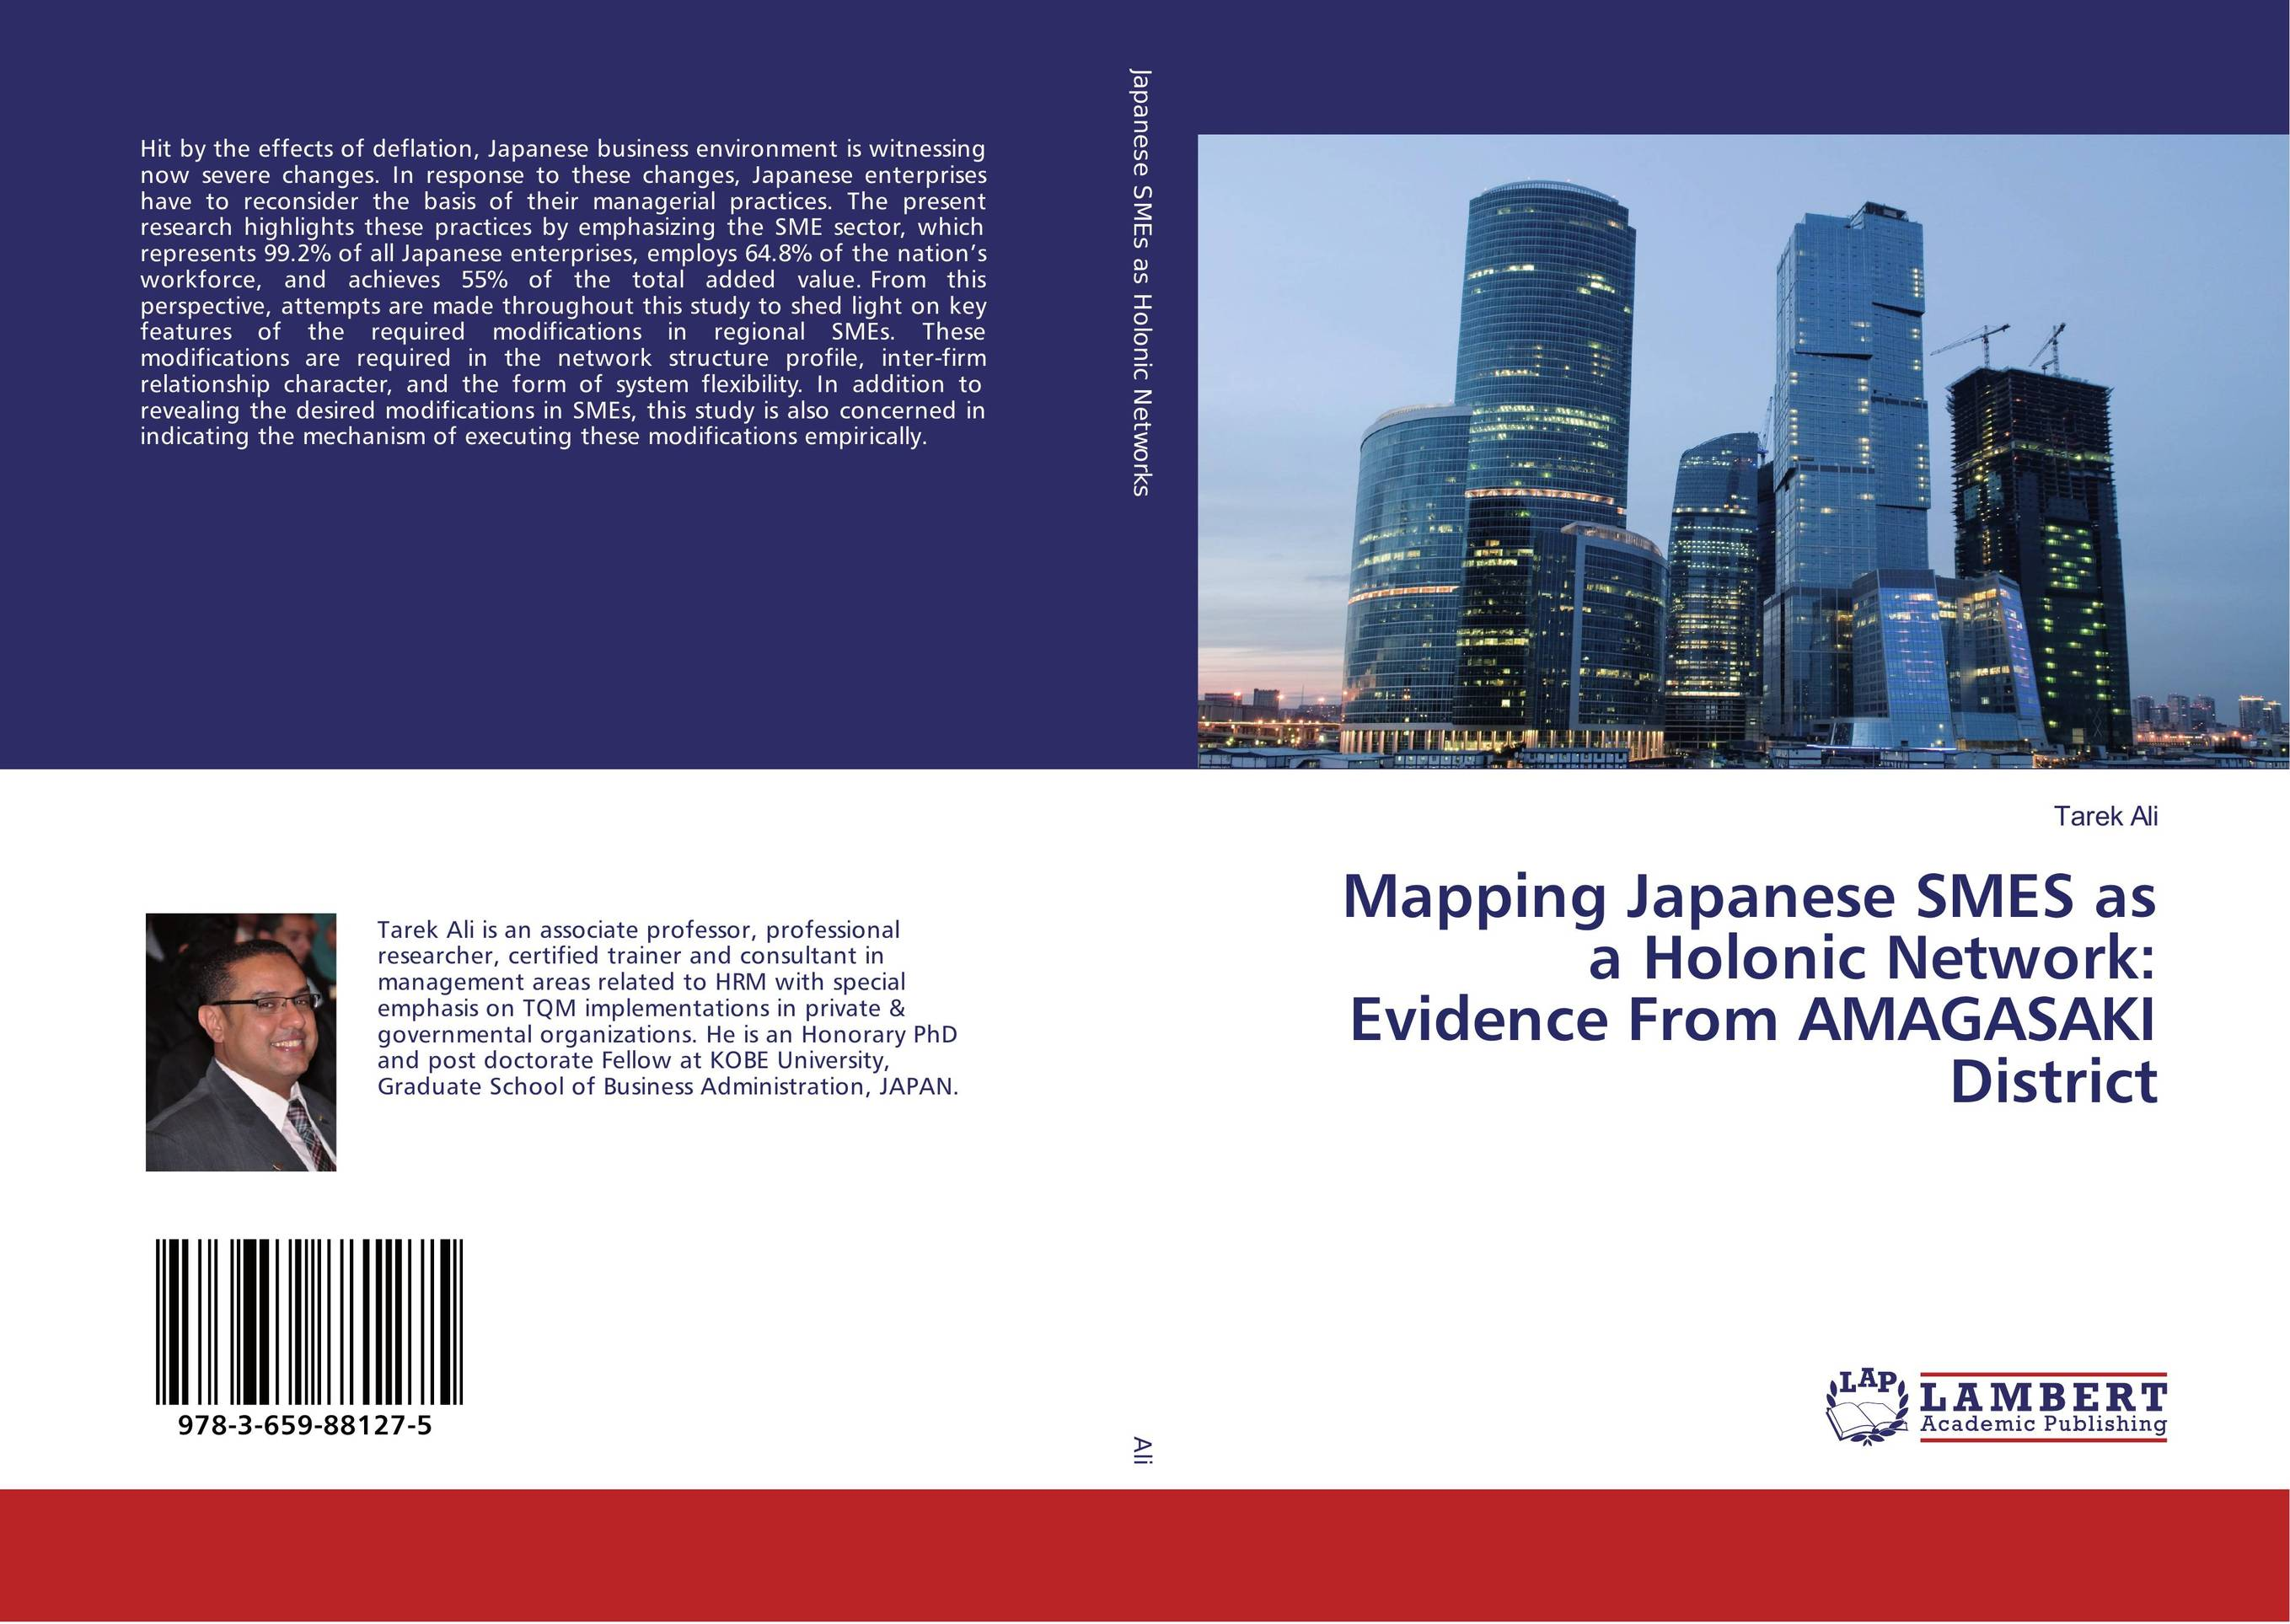 Mapping Japanese SMES as a Holonic Network: Evidence From AMAGASAKI District